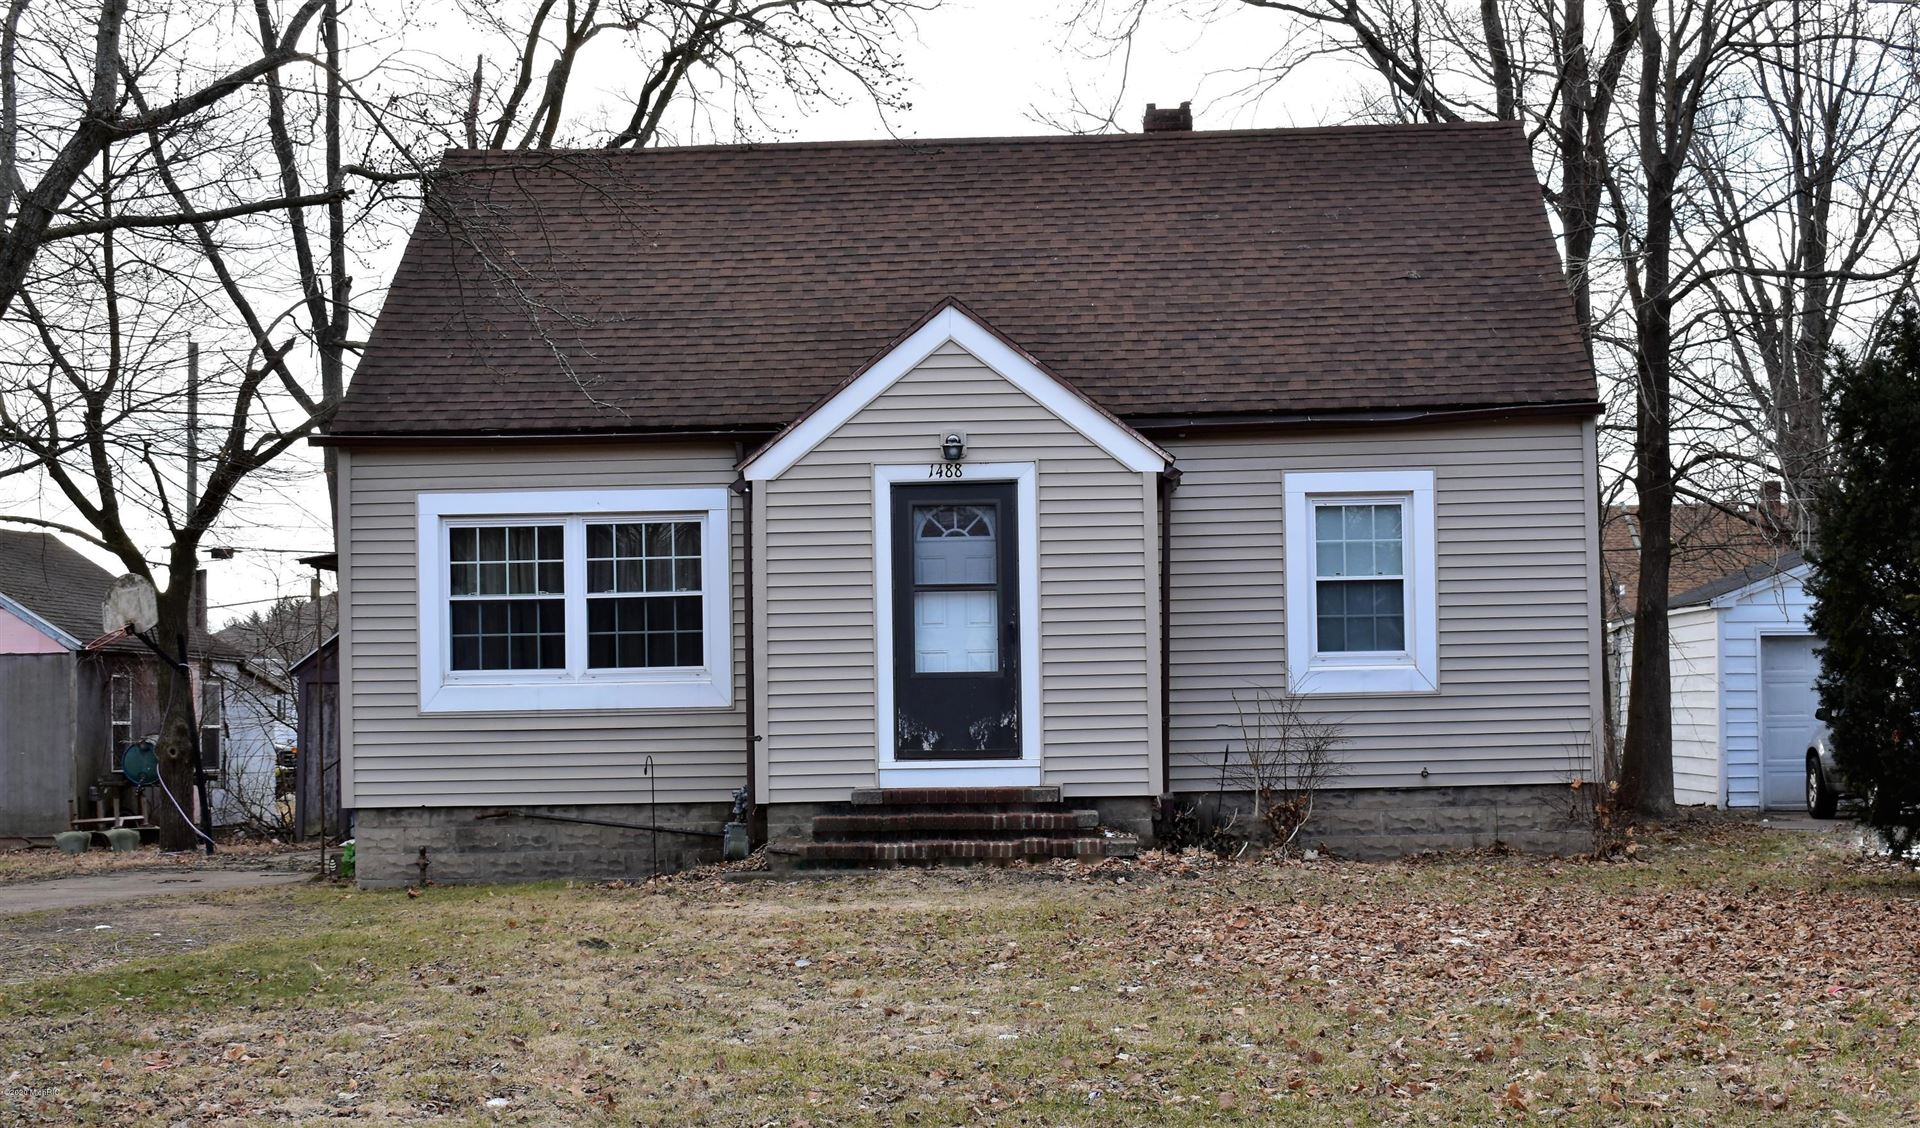 1488 Agard Avenue, Benton Harbor, MI 49022 - MLS#: 20019747